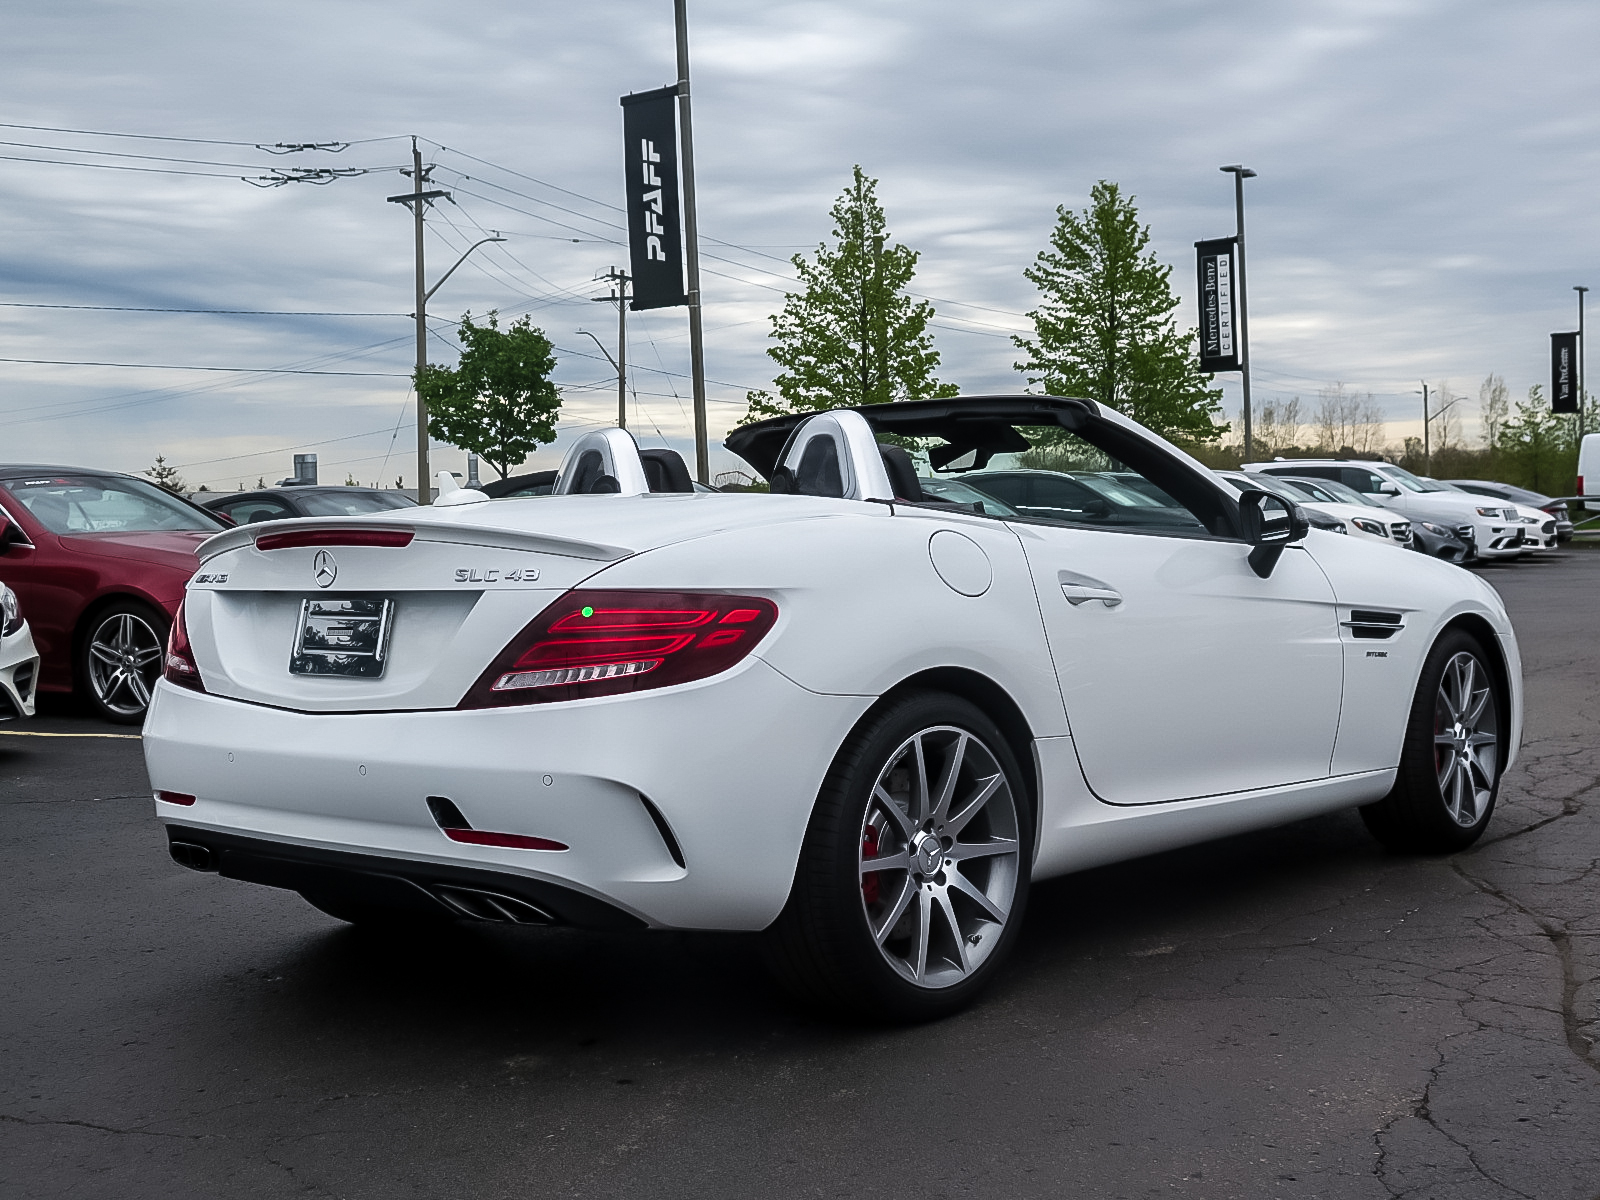 New 2019 Mercedes-Benz SLC43 AMG Roadster